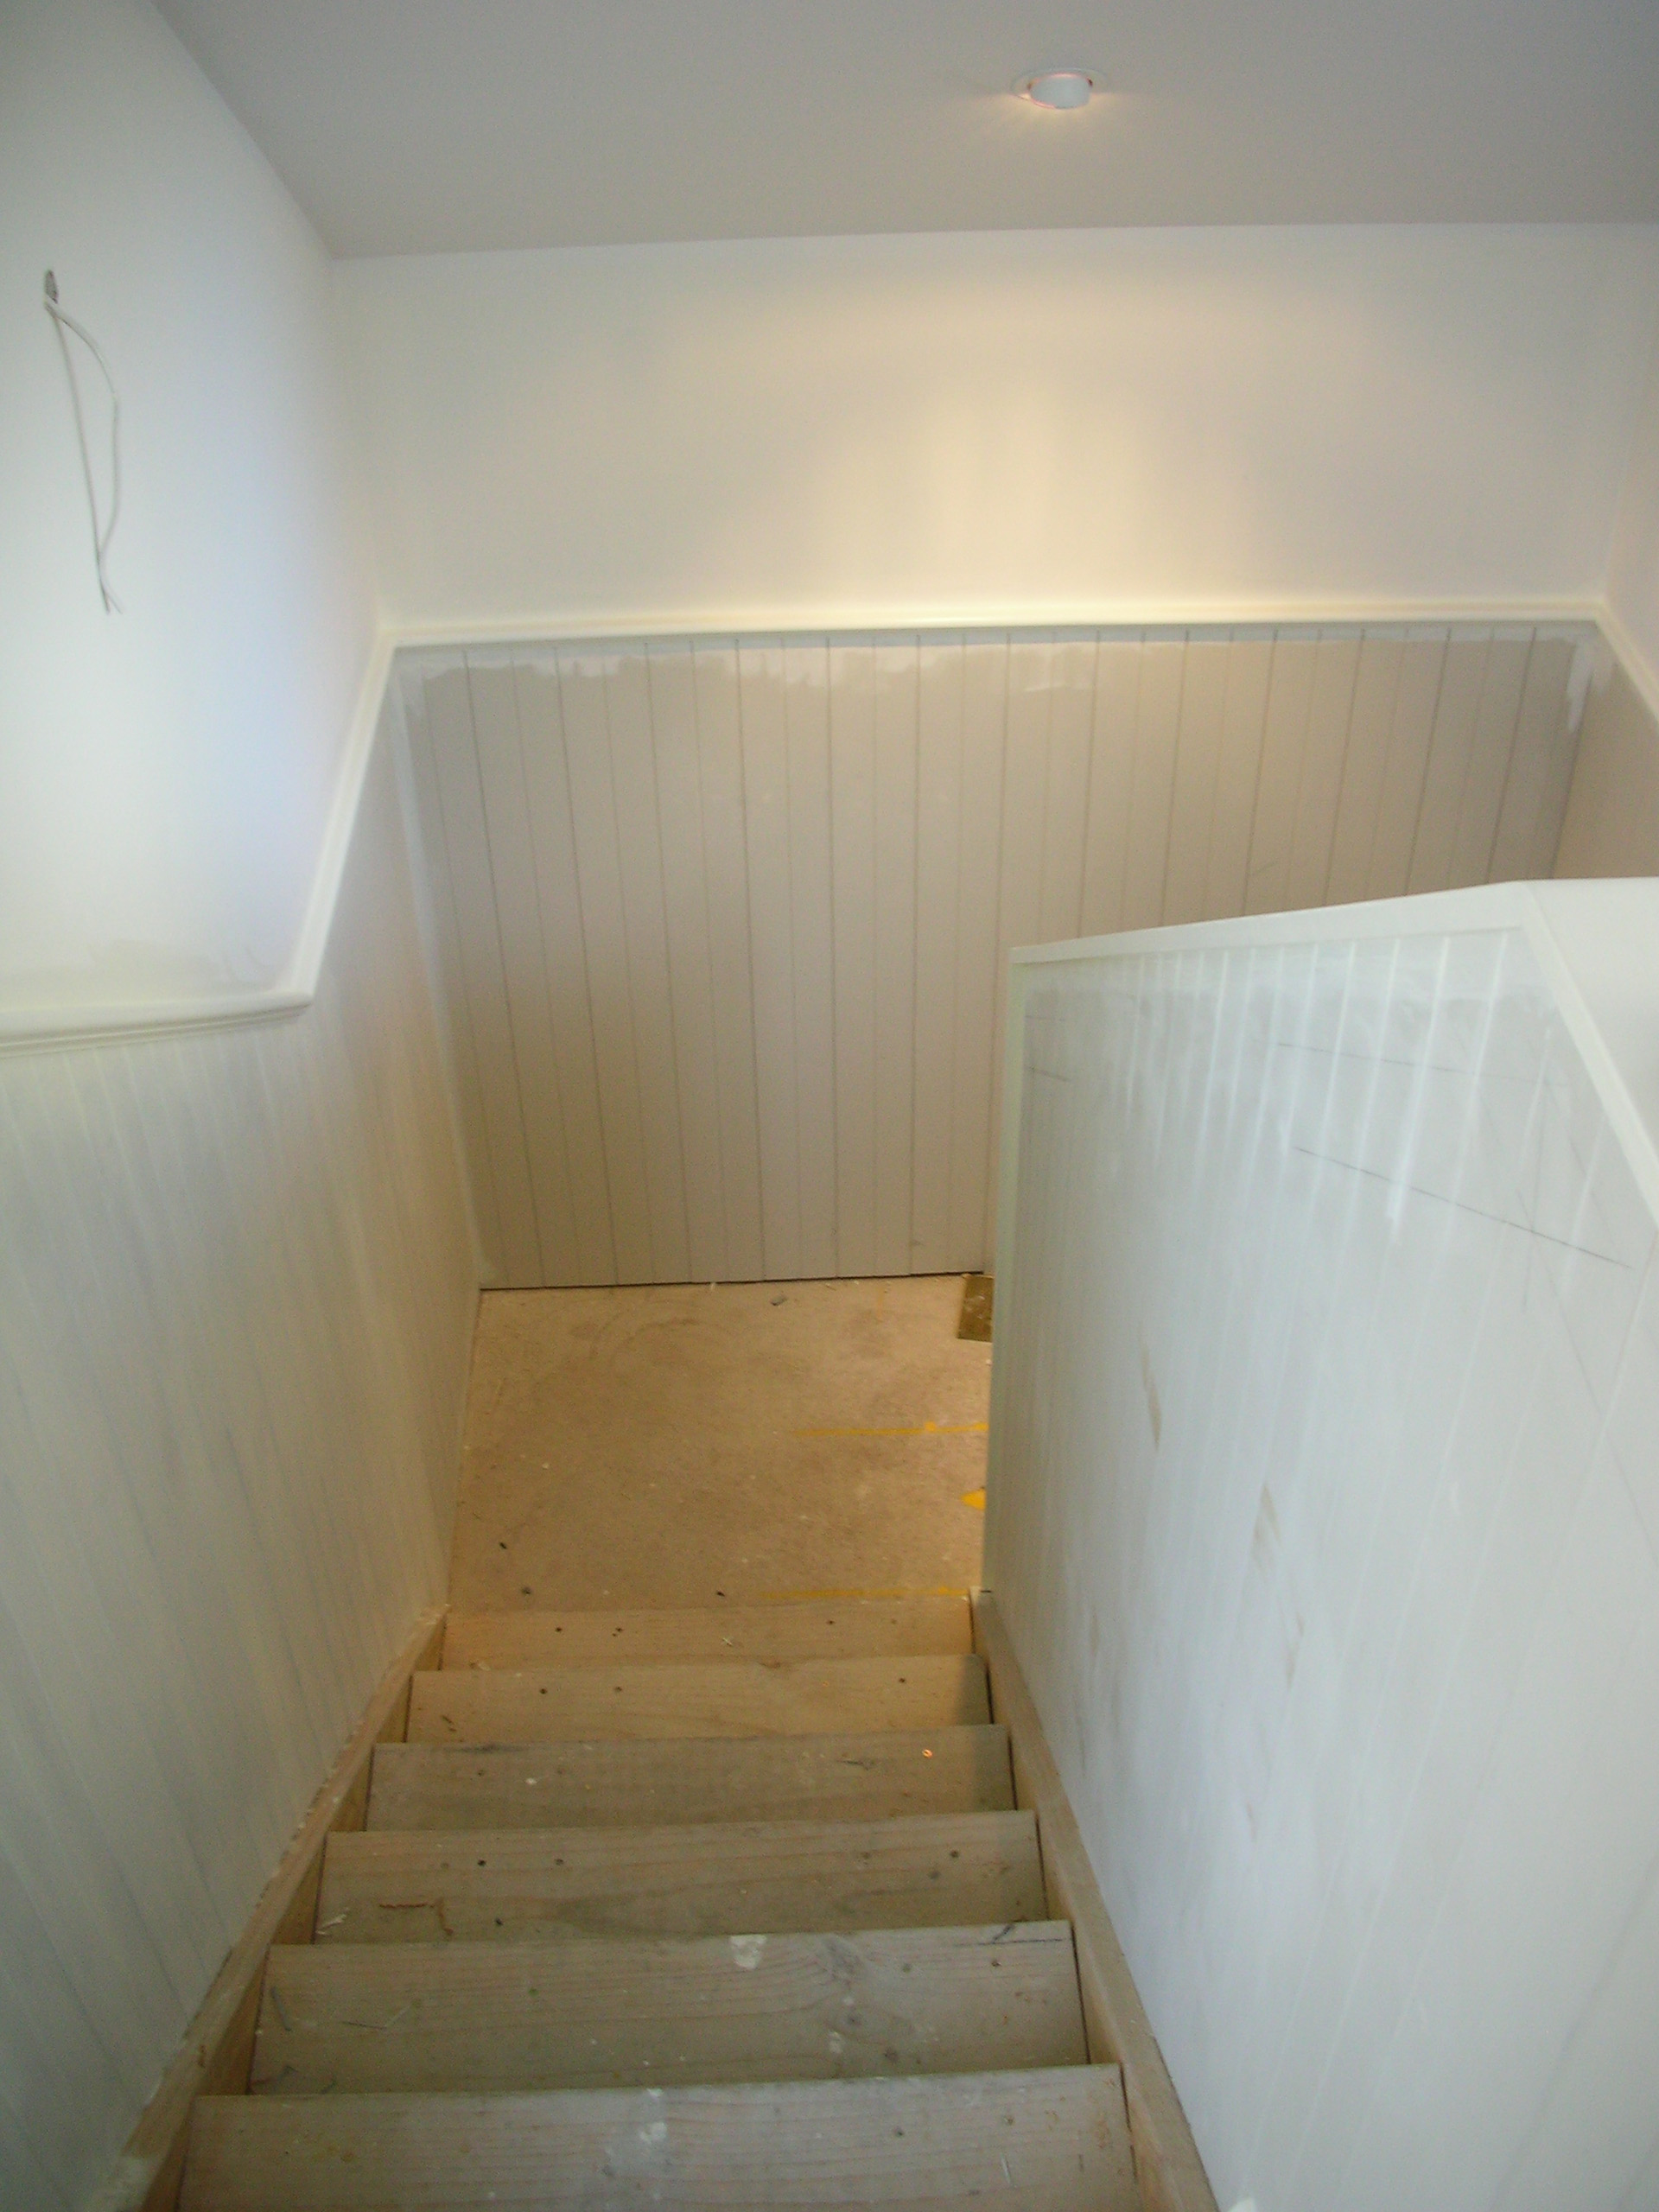 Loft staircase - During